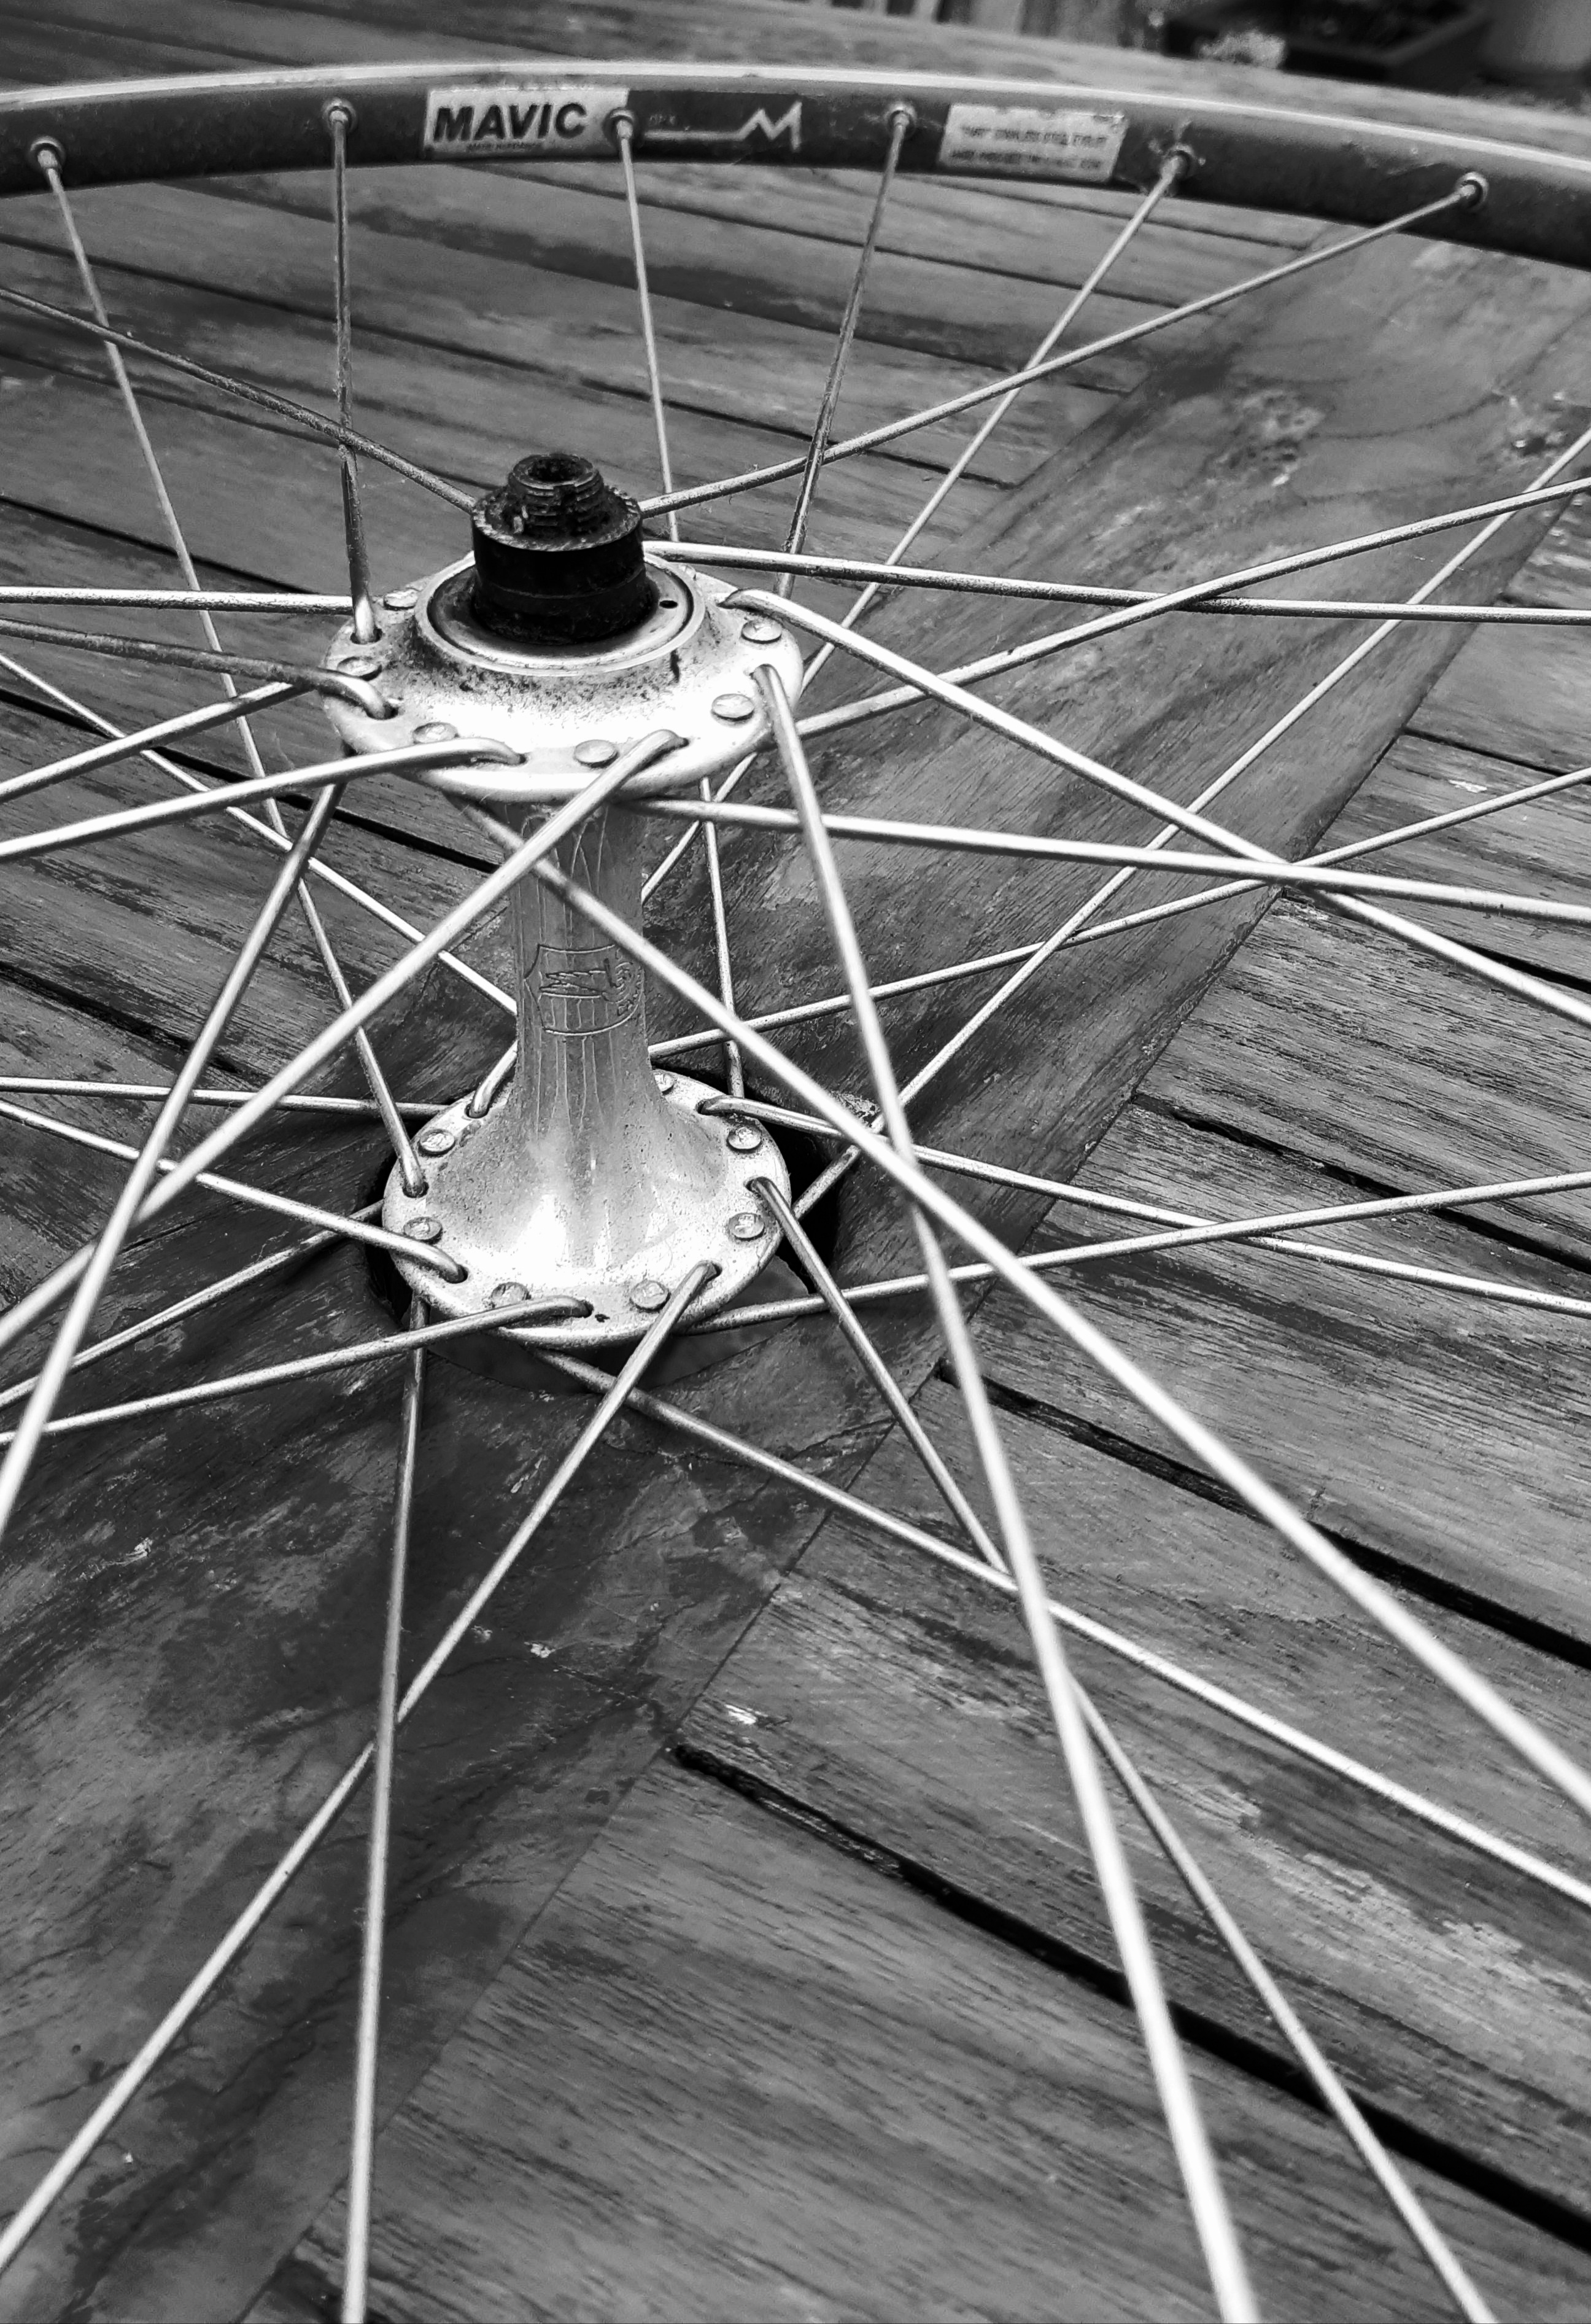 Spokes of a Bicycle tyre